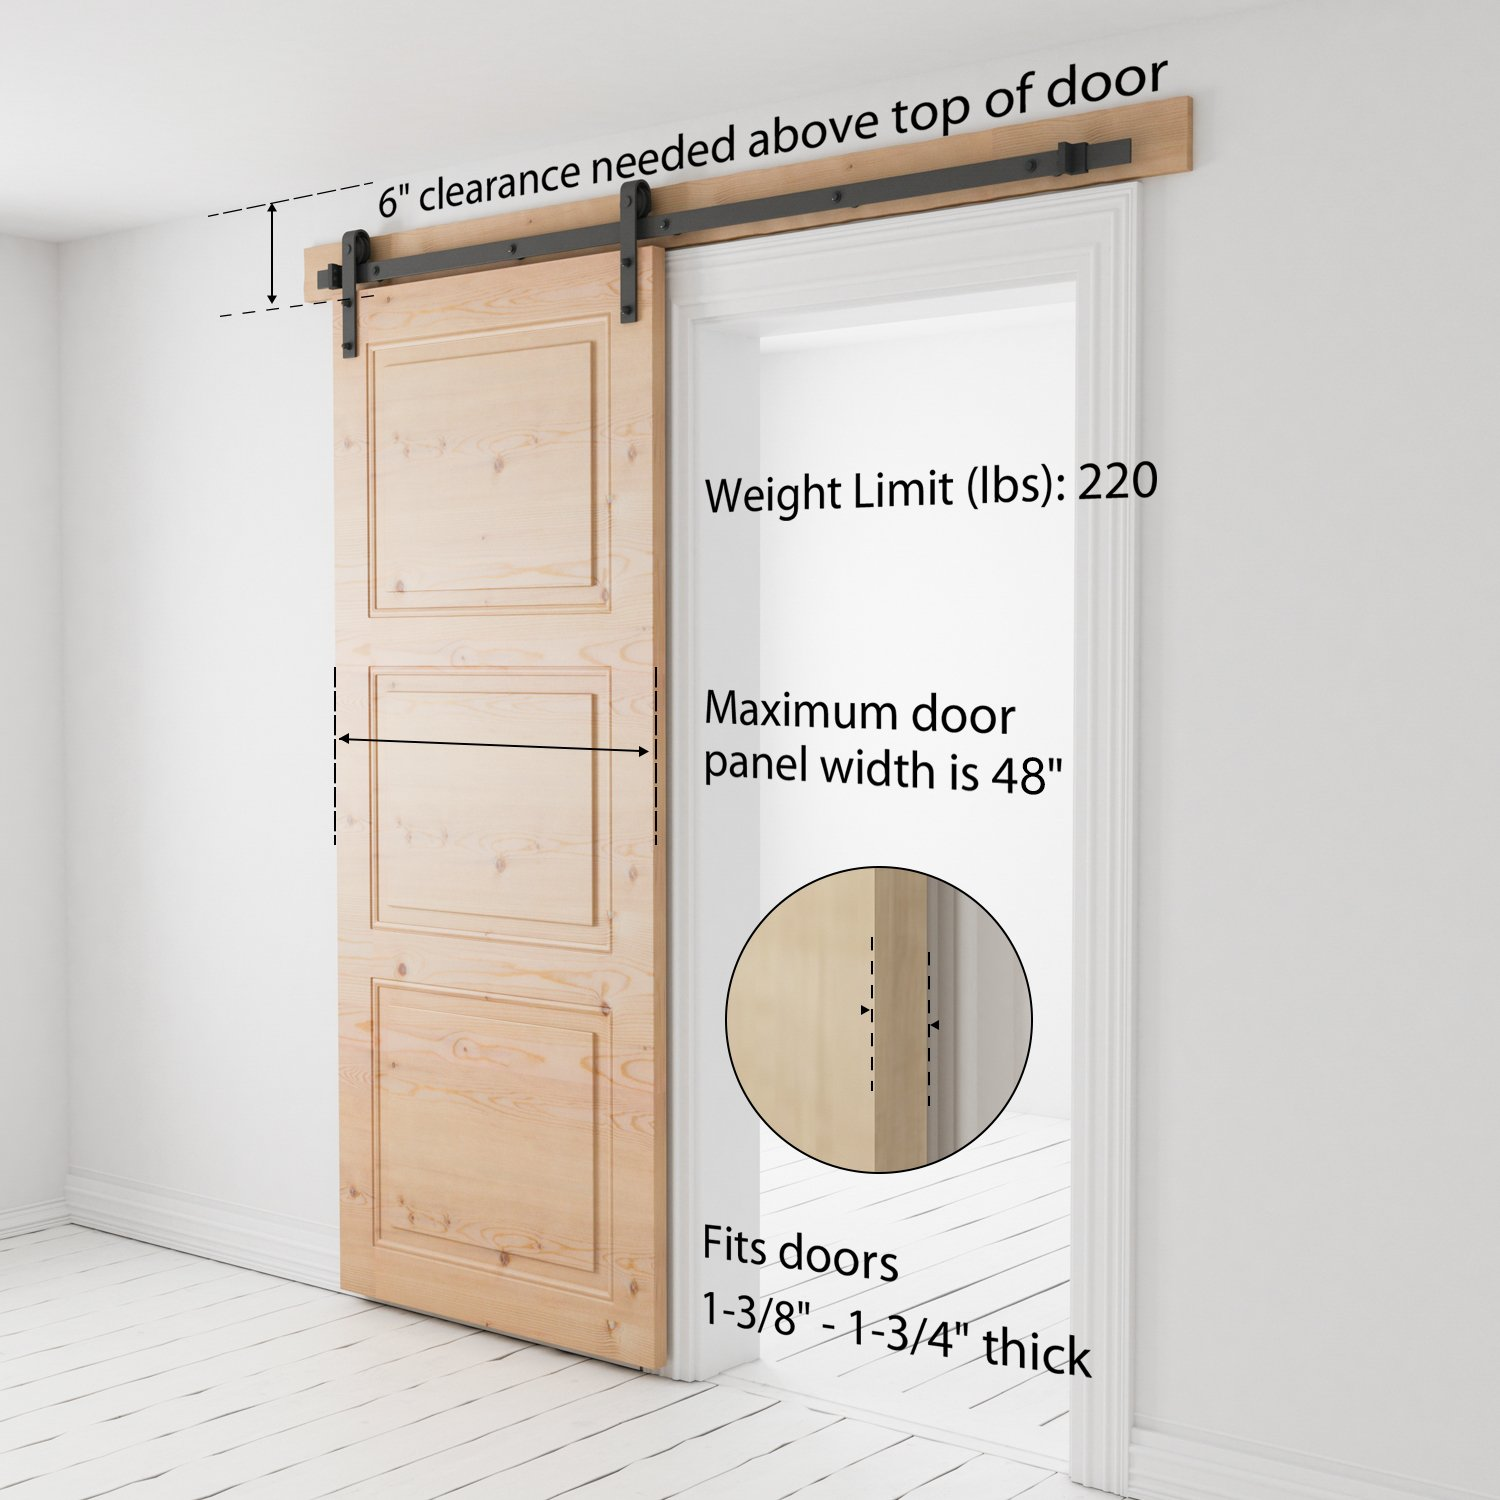 SMARTSTANDARD SDH-0080-STANDARD-BK Heavy Duty Sturdy Sliding Barn Door Hardware Kit, 8' SingleRail,Super Smoothly and Quietly, Simple and Easy to Install, Fit 42-48'' Wide DoorPanel by SMARTSTANDARD (Image #2)